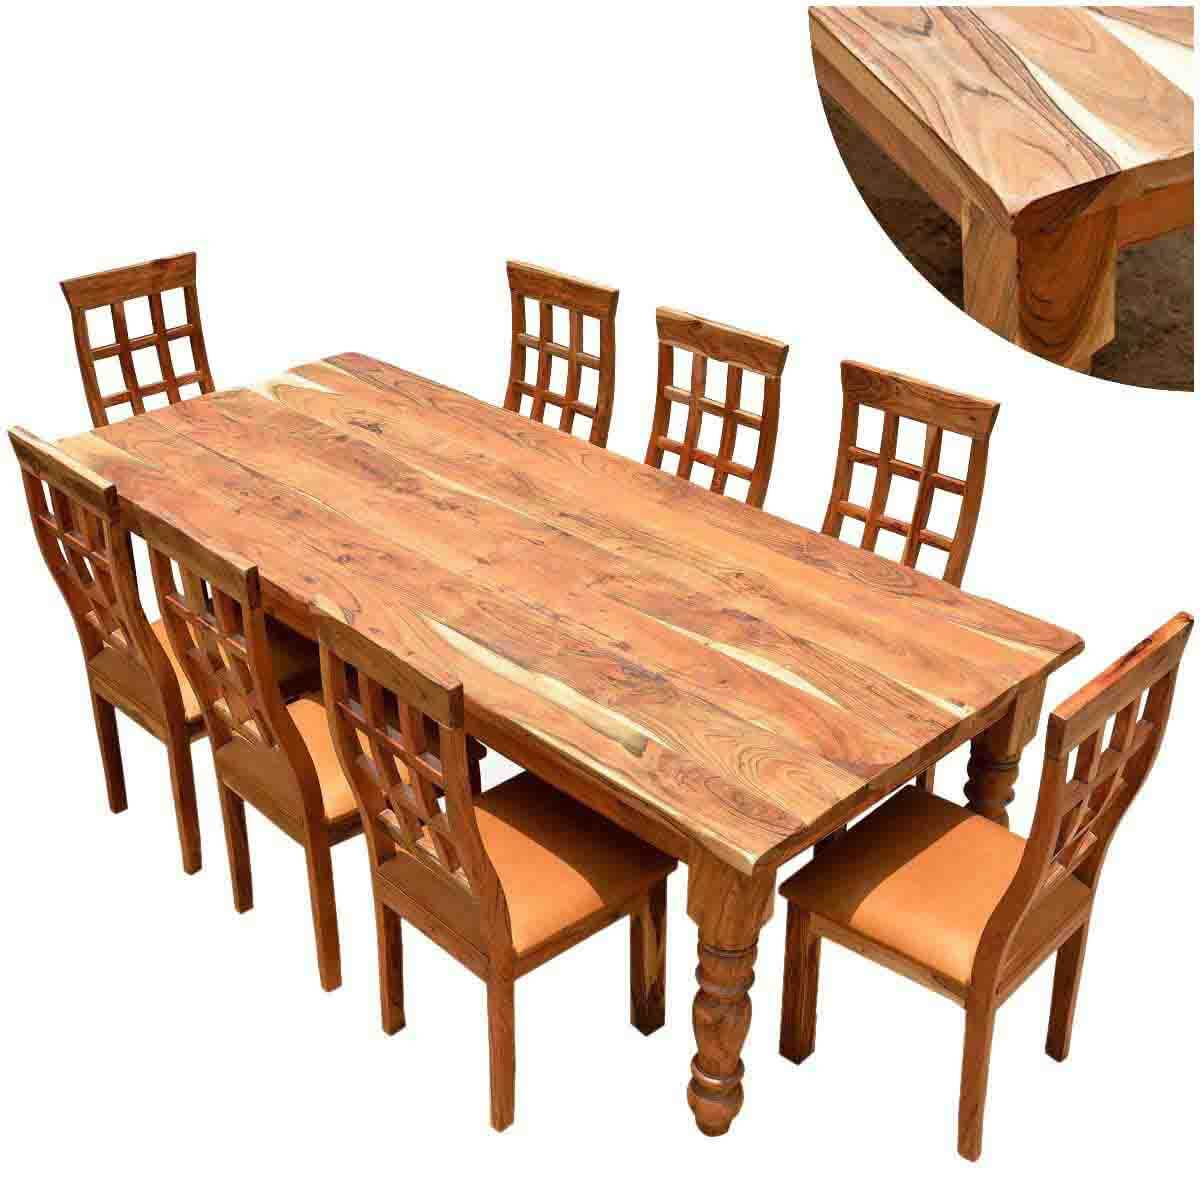 Wood Dinette Tables ~ Rustic dining table and chair sets sierra living concepts